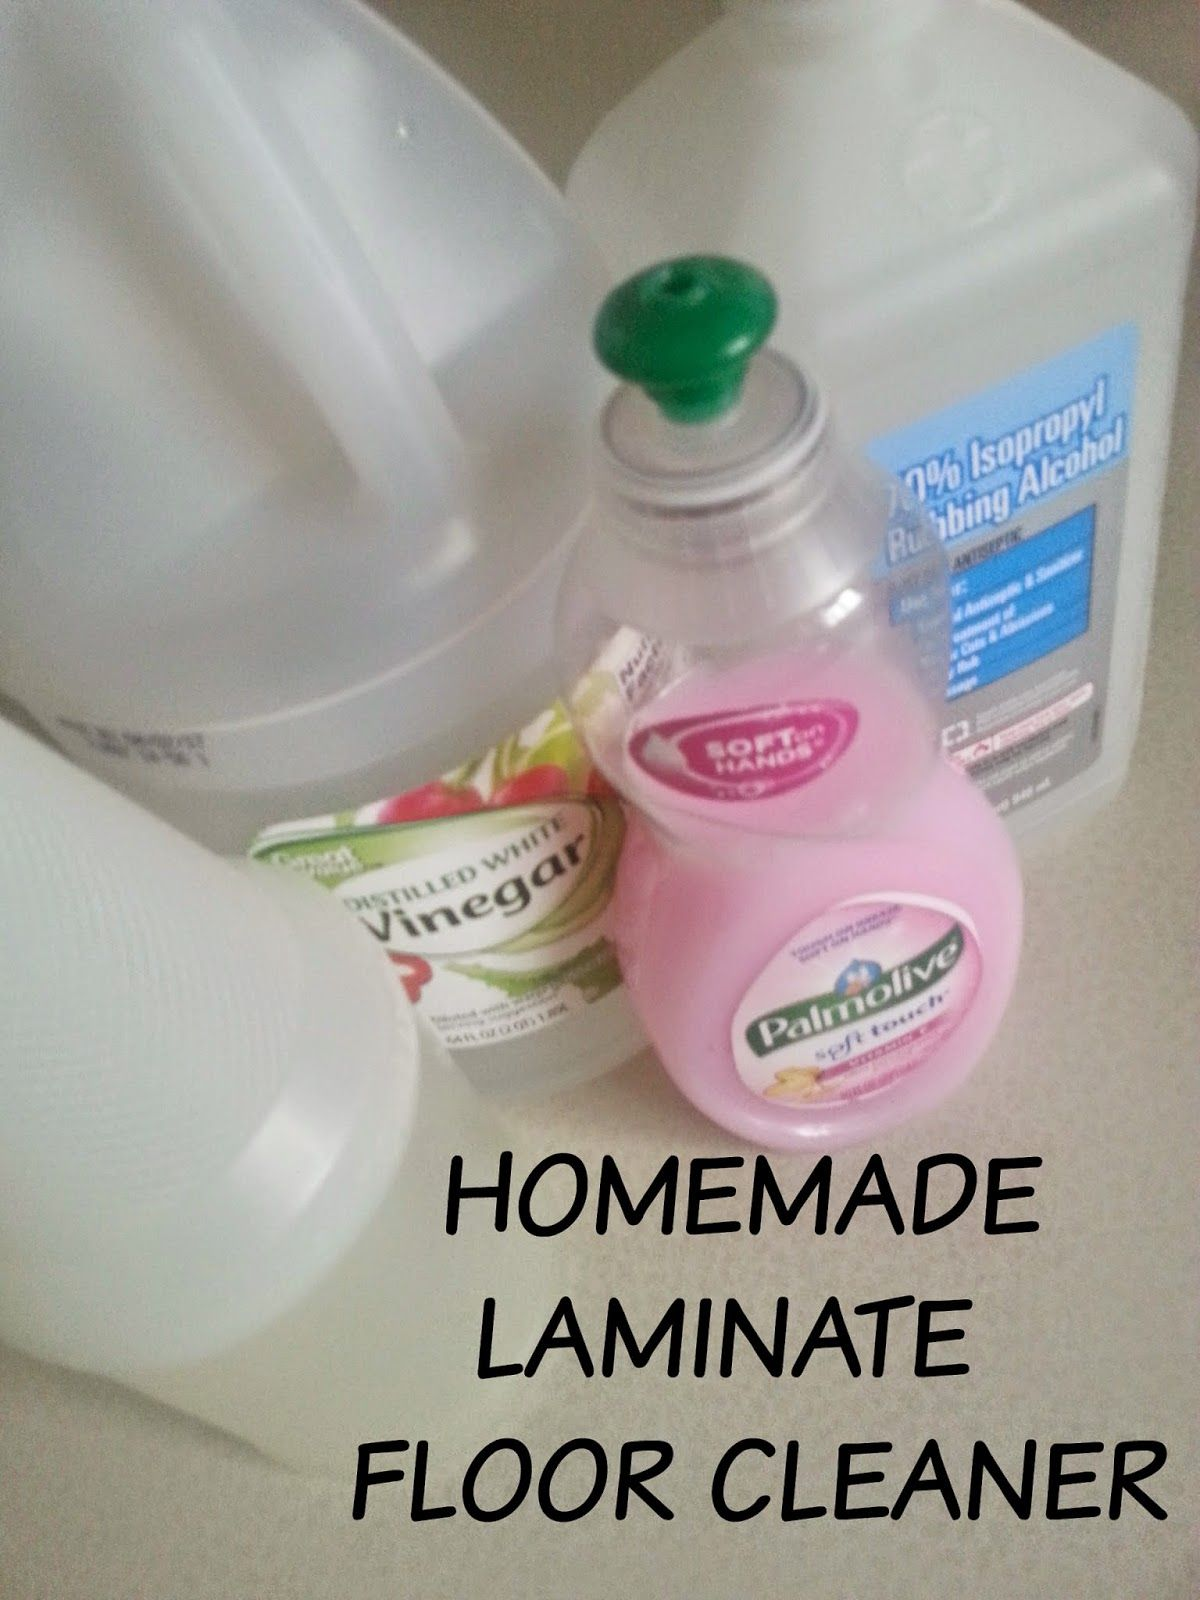 HOMEMADE LAMINATE FLOOR CLEANER 1 cup water 1 cup rubbing alcohol 1 ...